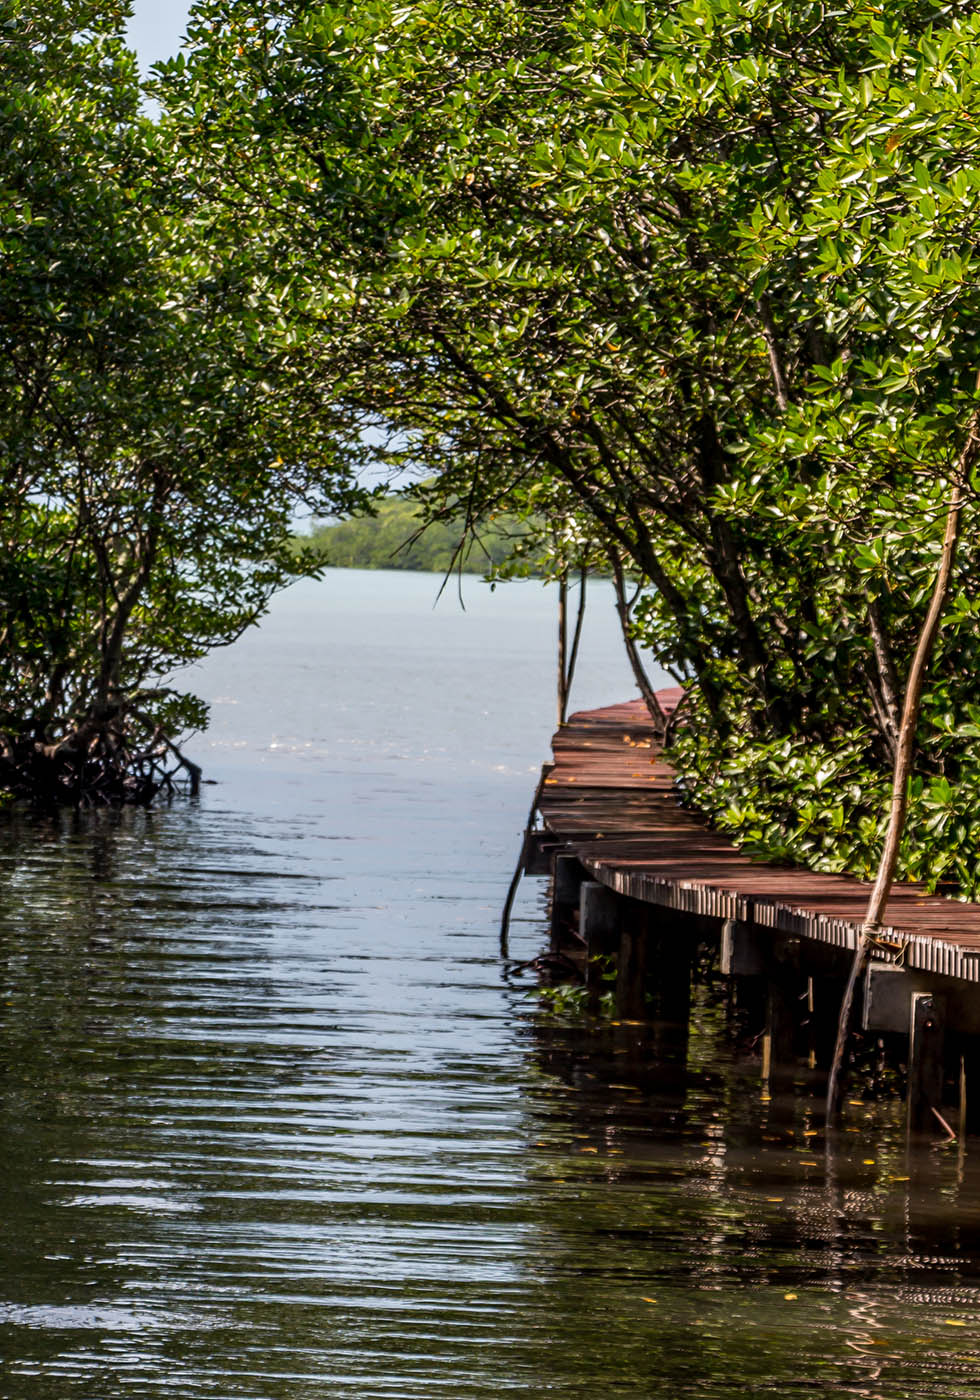 The Mangrove walkway